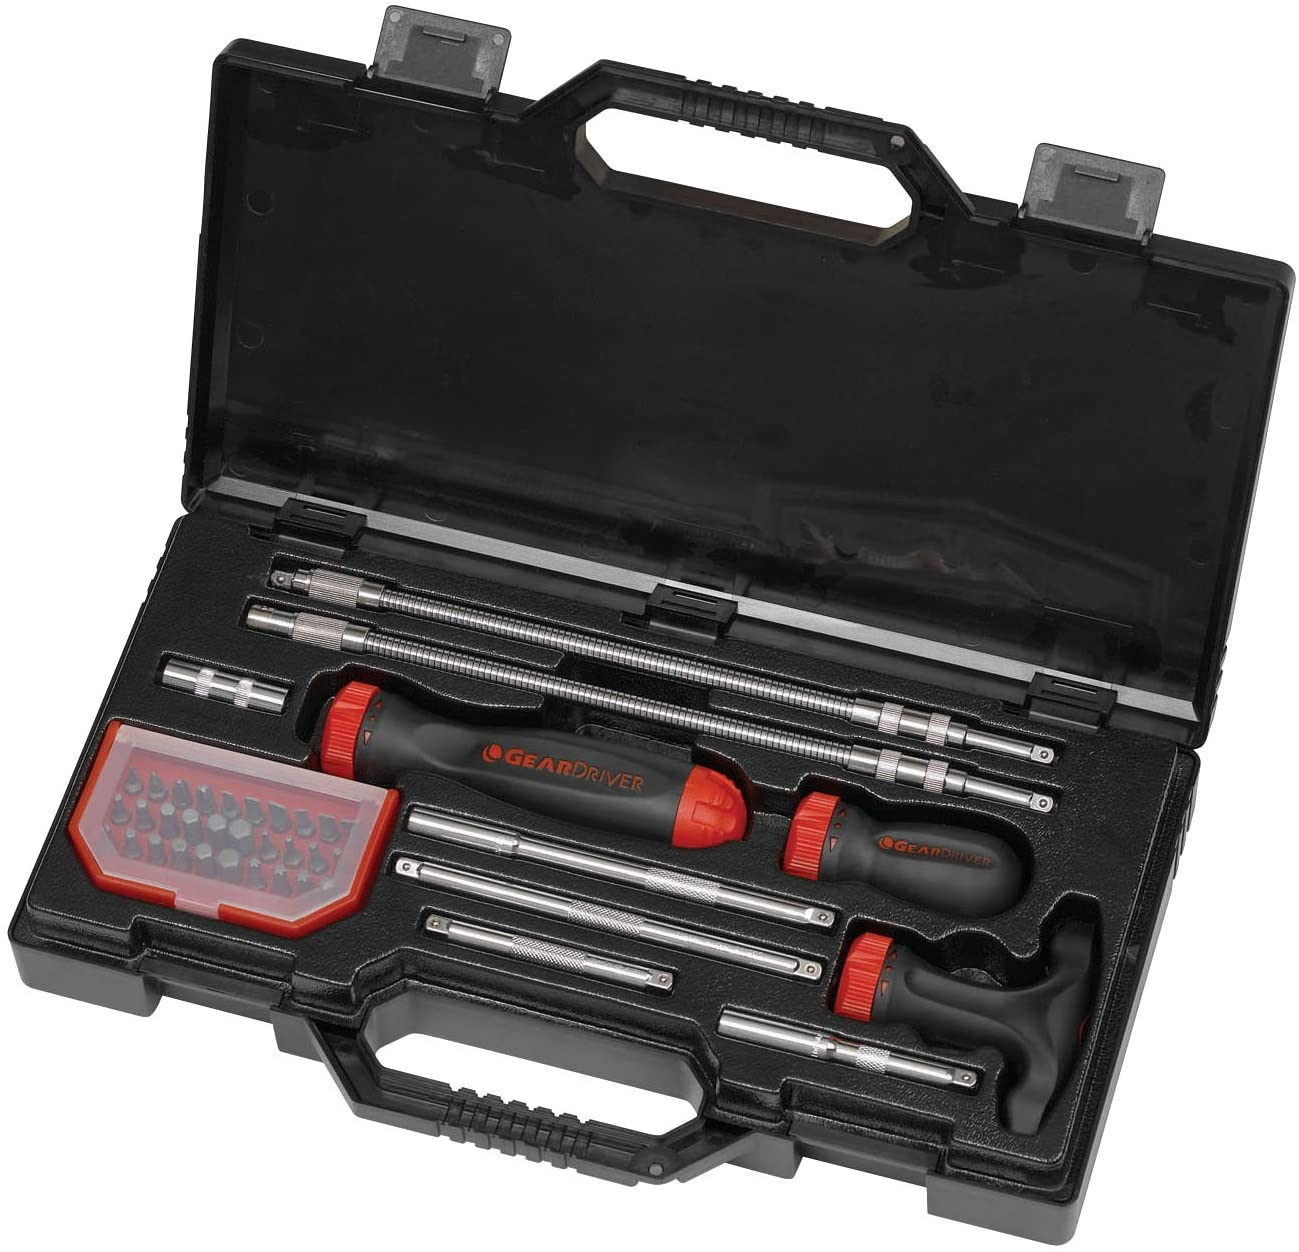 GEARWRENCH 8940 Ratcheting Screwdriver, 40-Piece